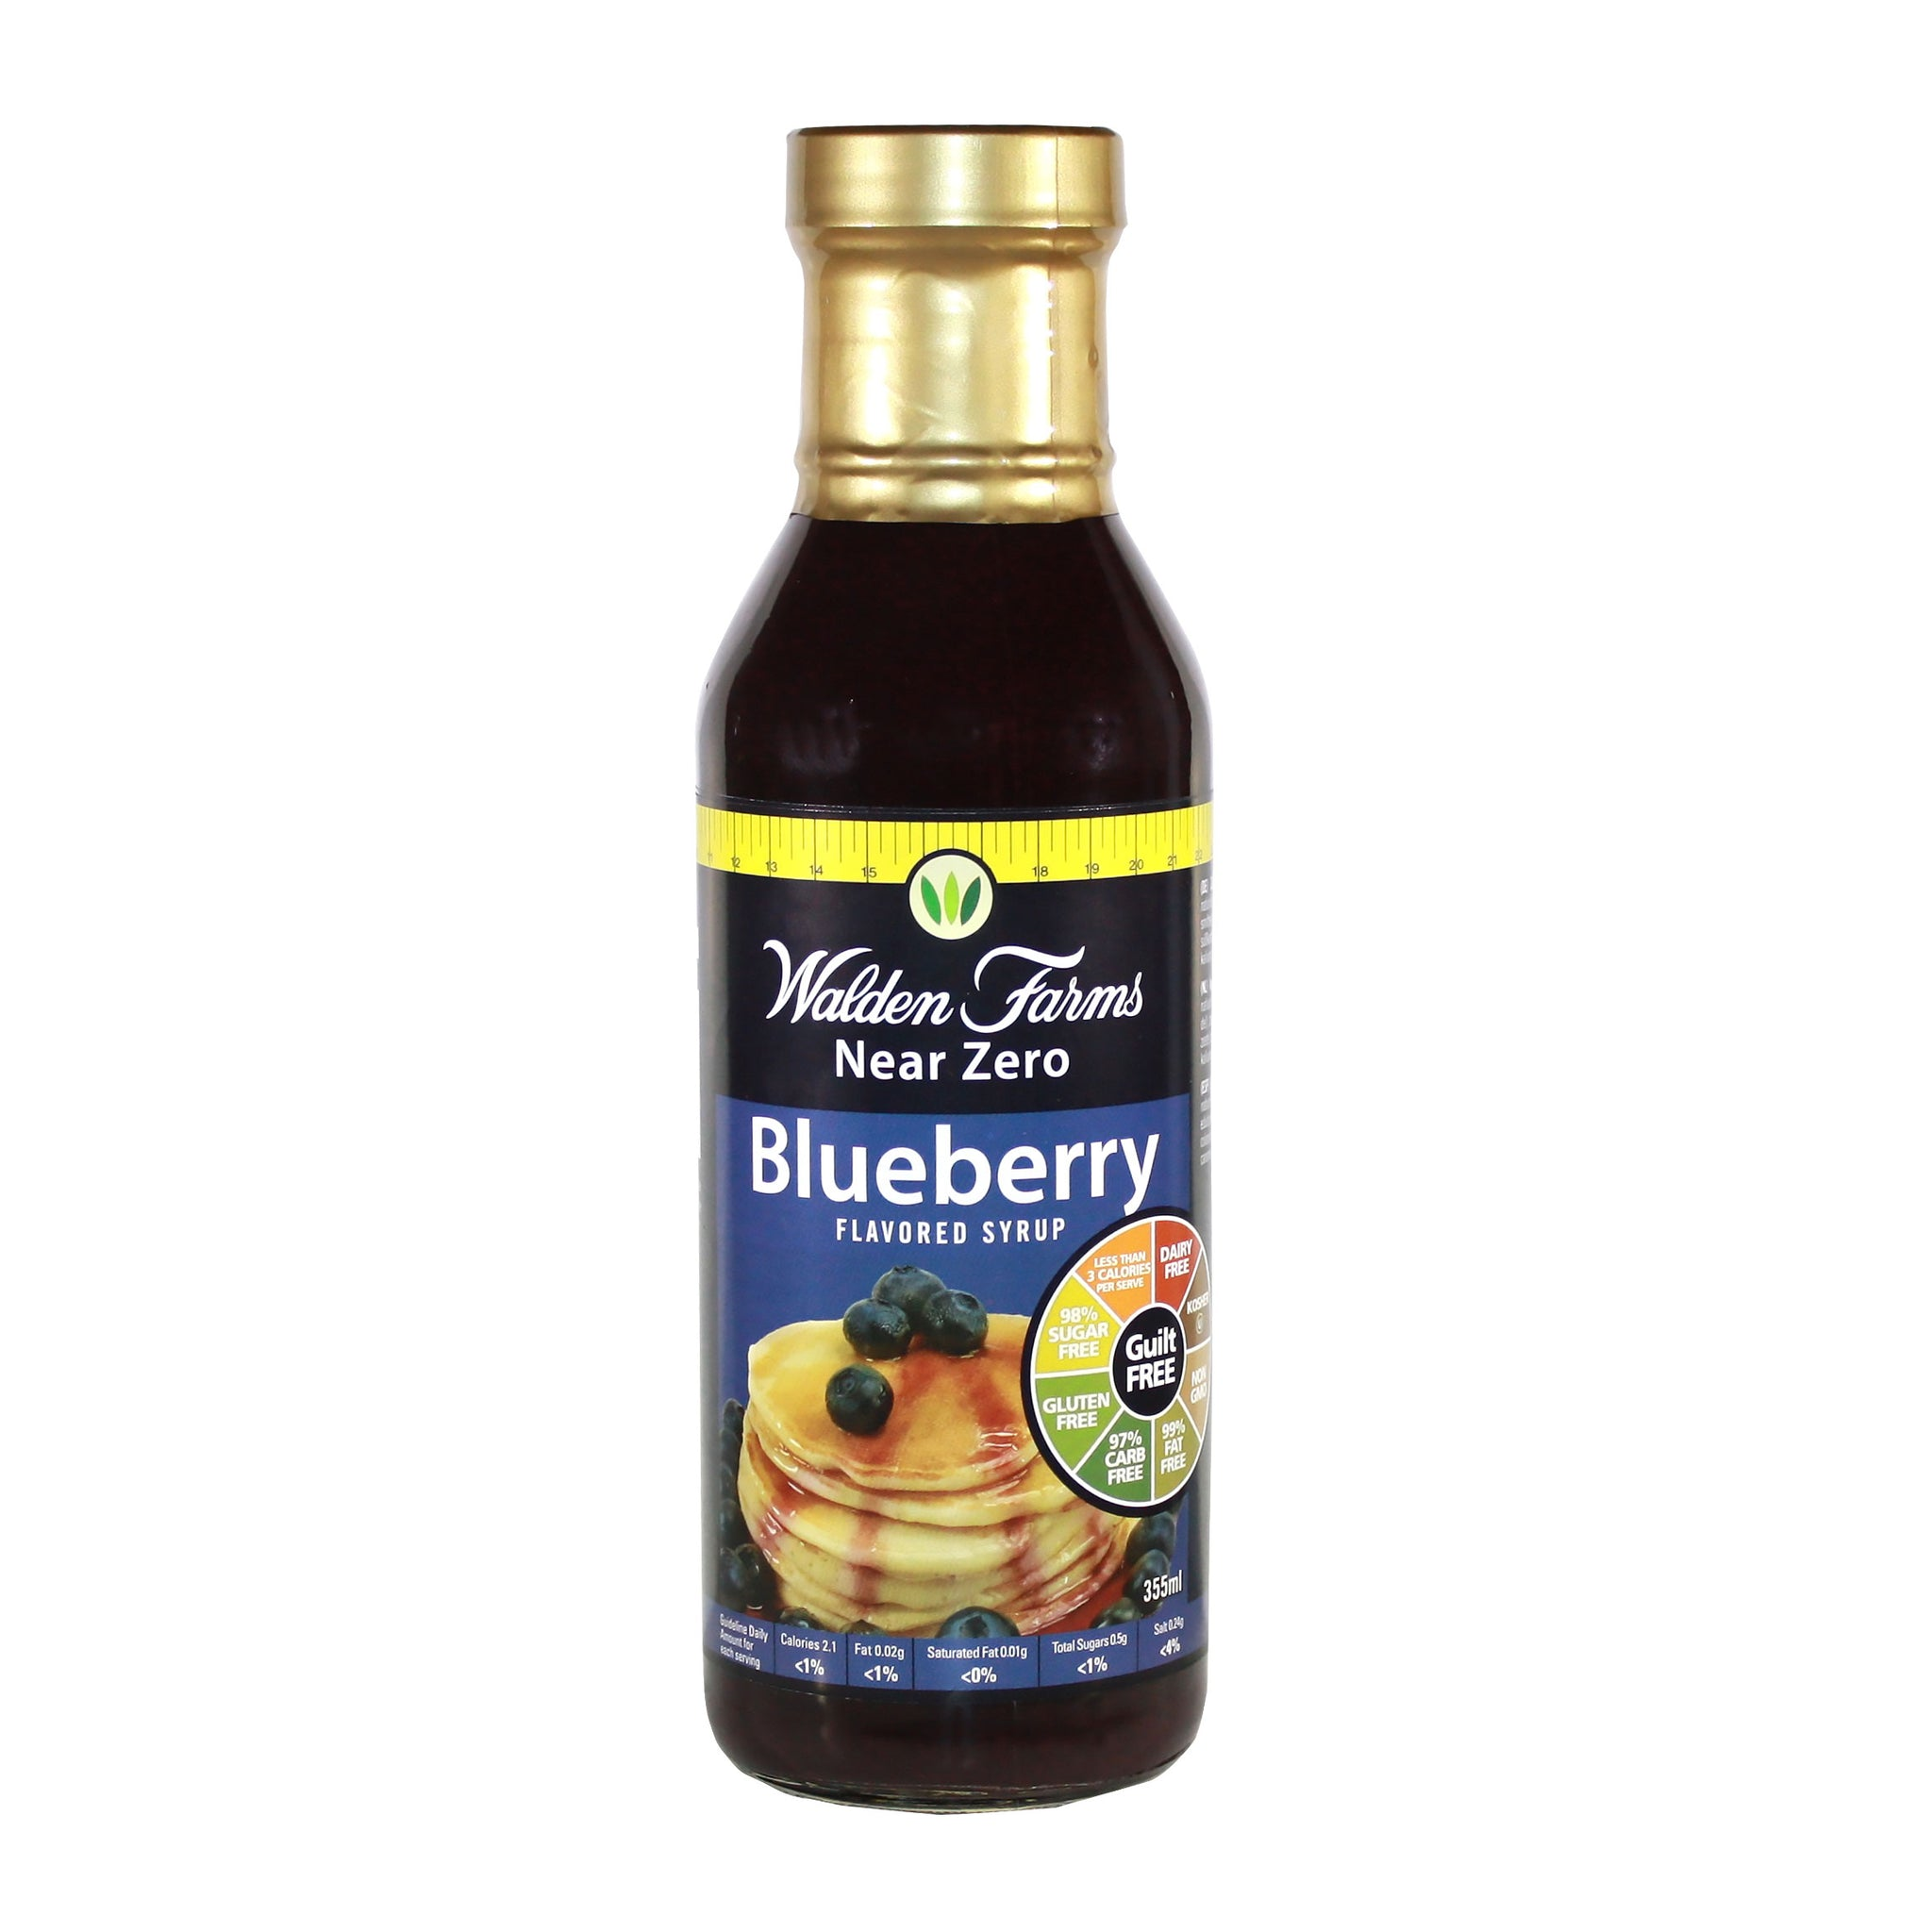 Dairy Free Blueberry Syrup with Low Calorie & Near Zero Fat and Sugar